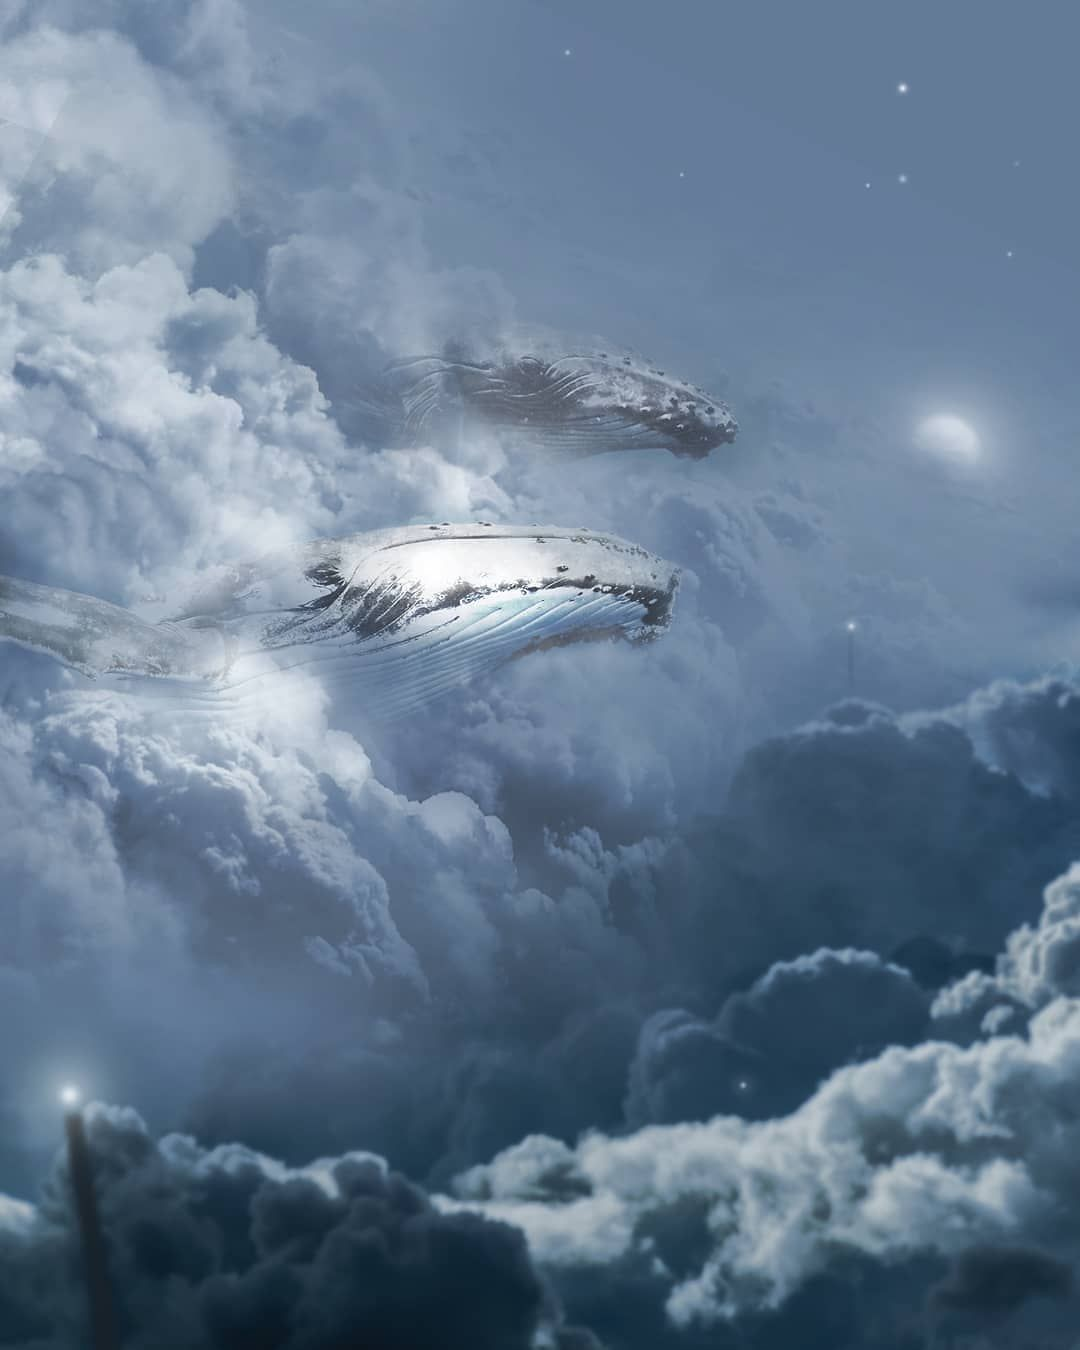 whales in the clouds with a full moon art edit poster